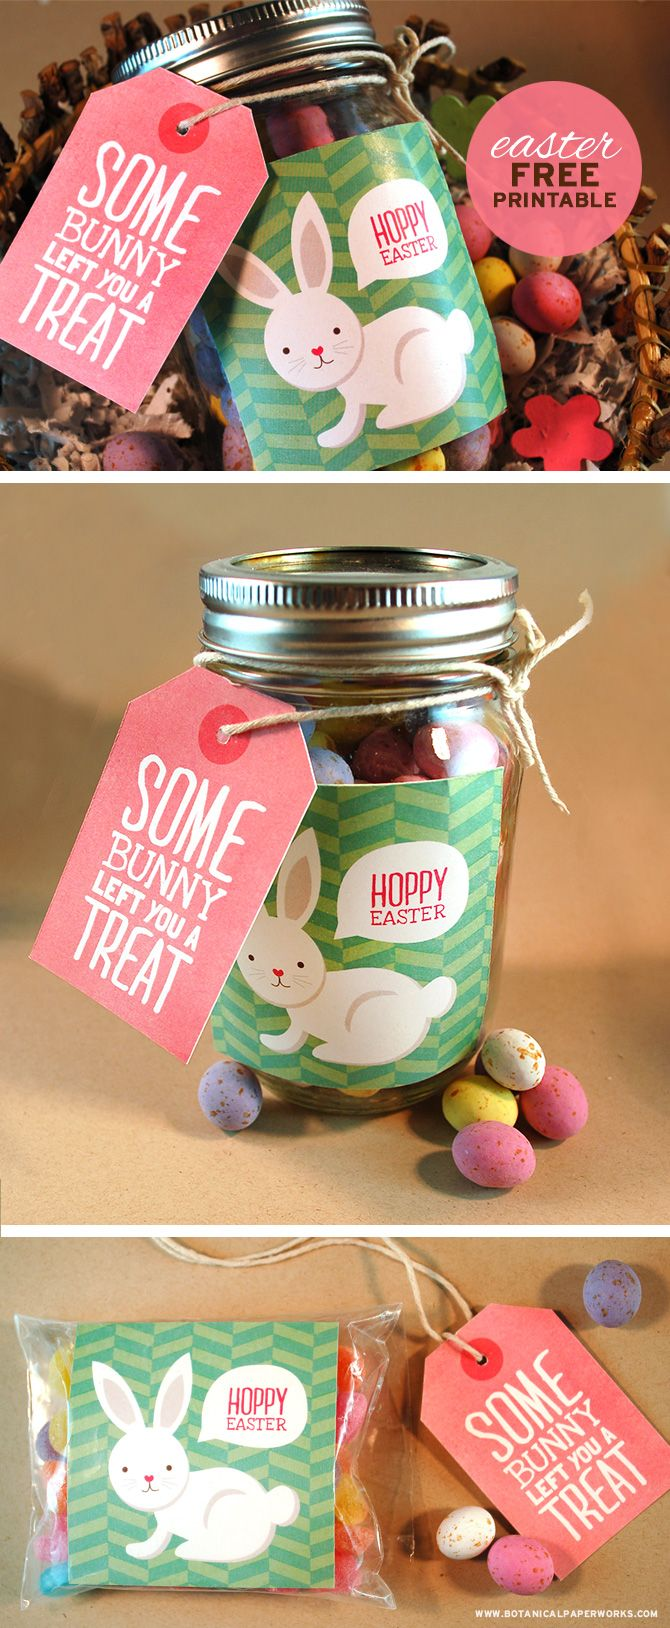 215 best easter gift ideas images on pinterest easter easter free printable easter treat tags labels negle Image collections